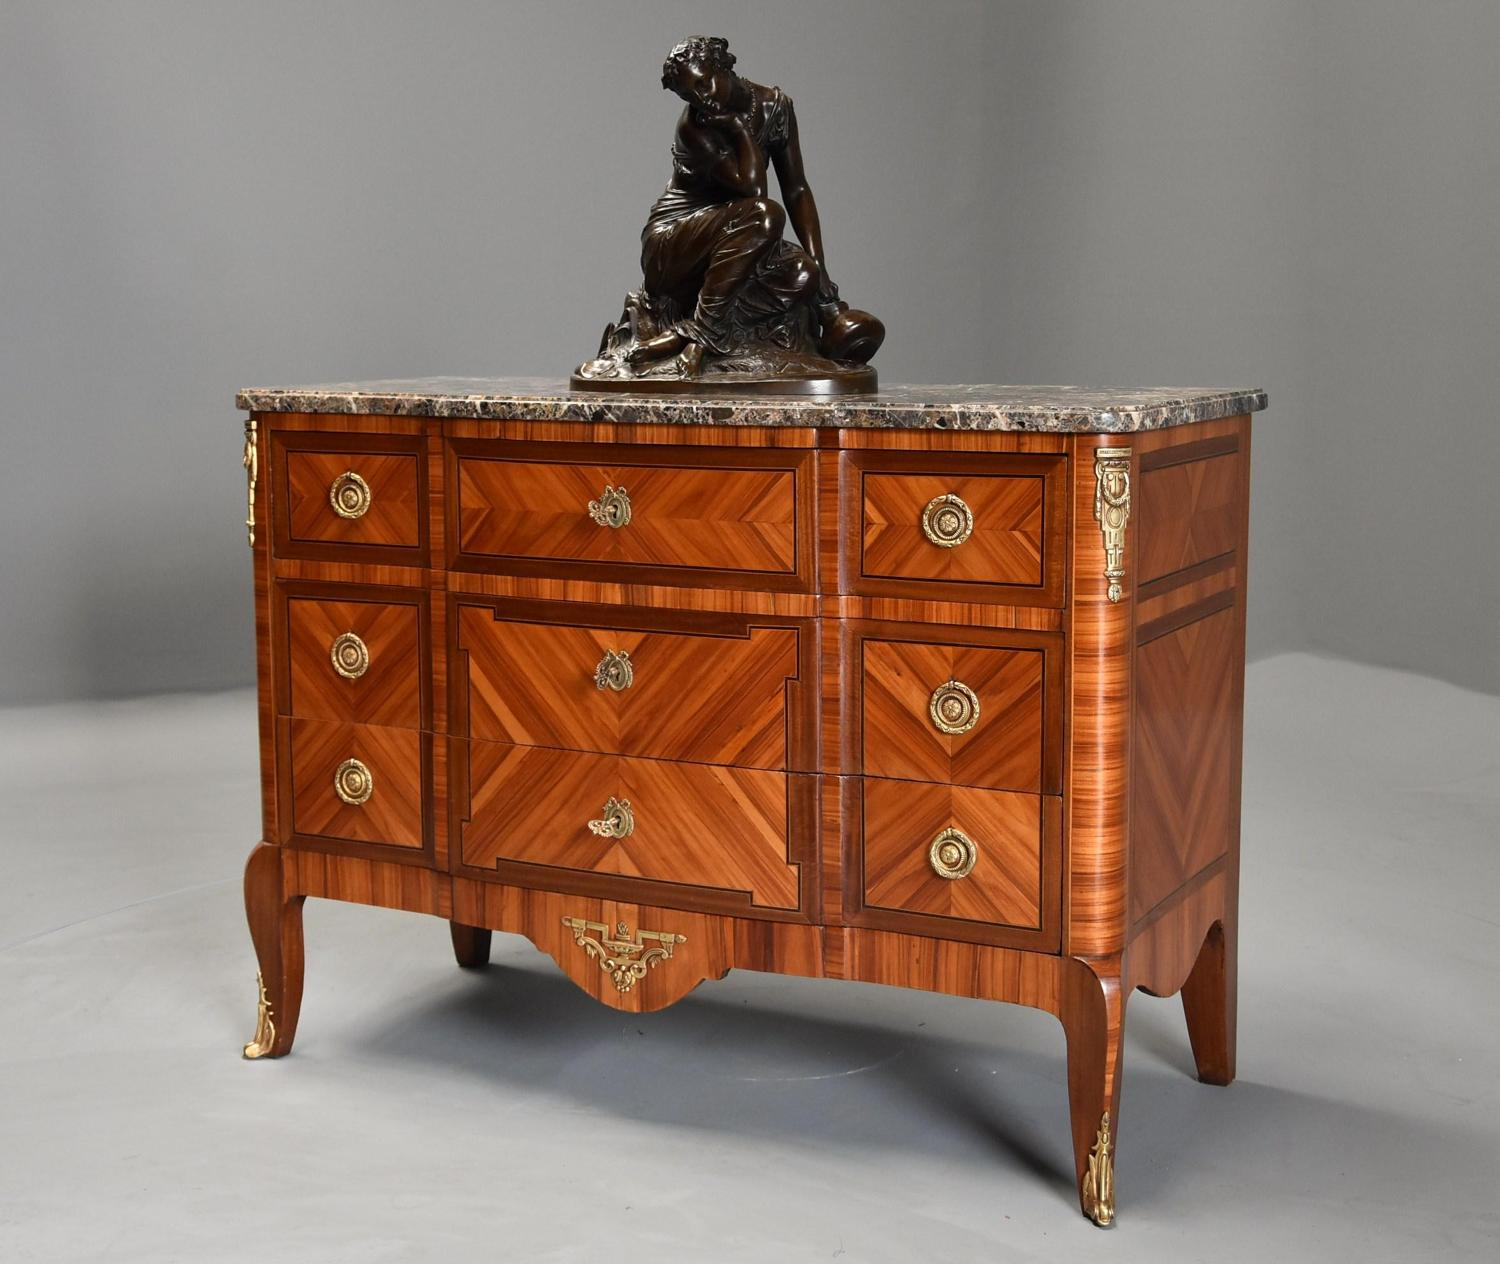 French late 19th century Louis XVI style Kingwood breakfront commode